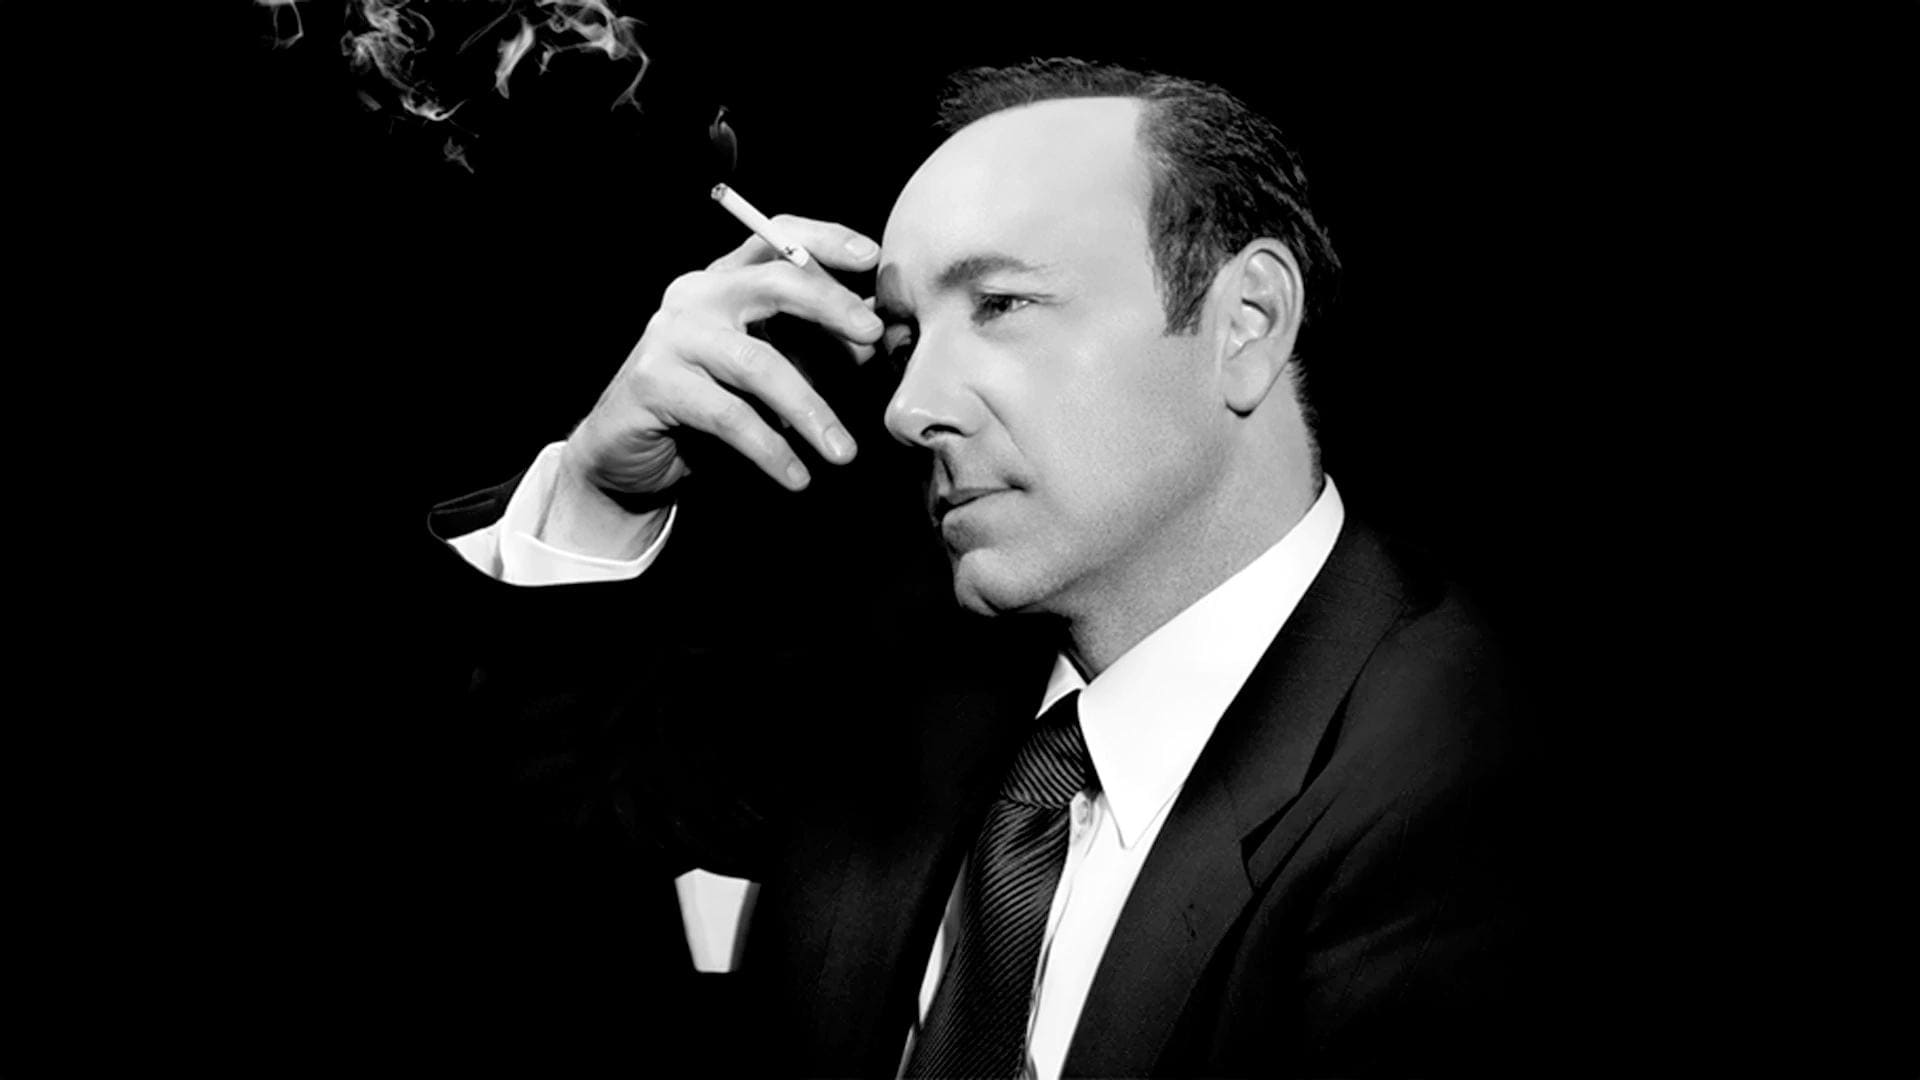 Kevin Spacey: May 20, 2006